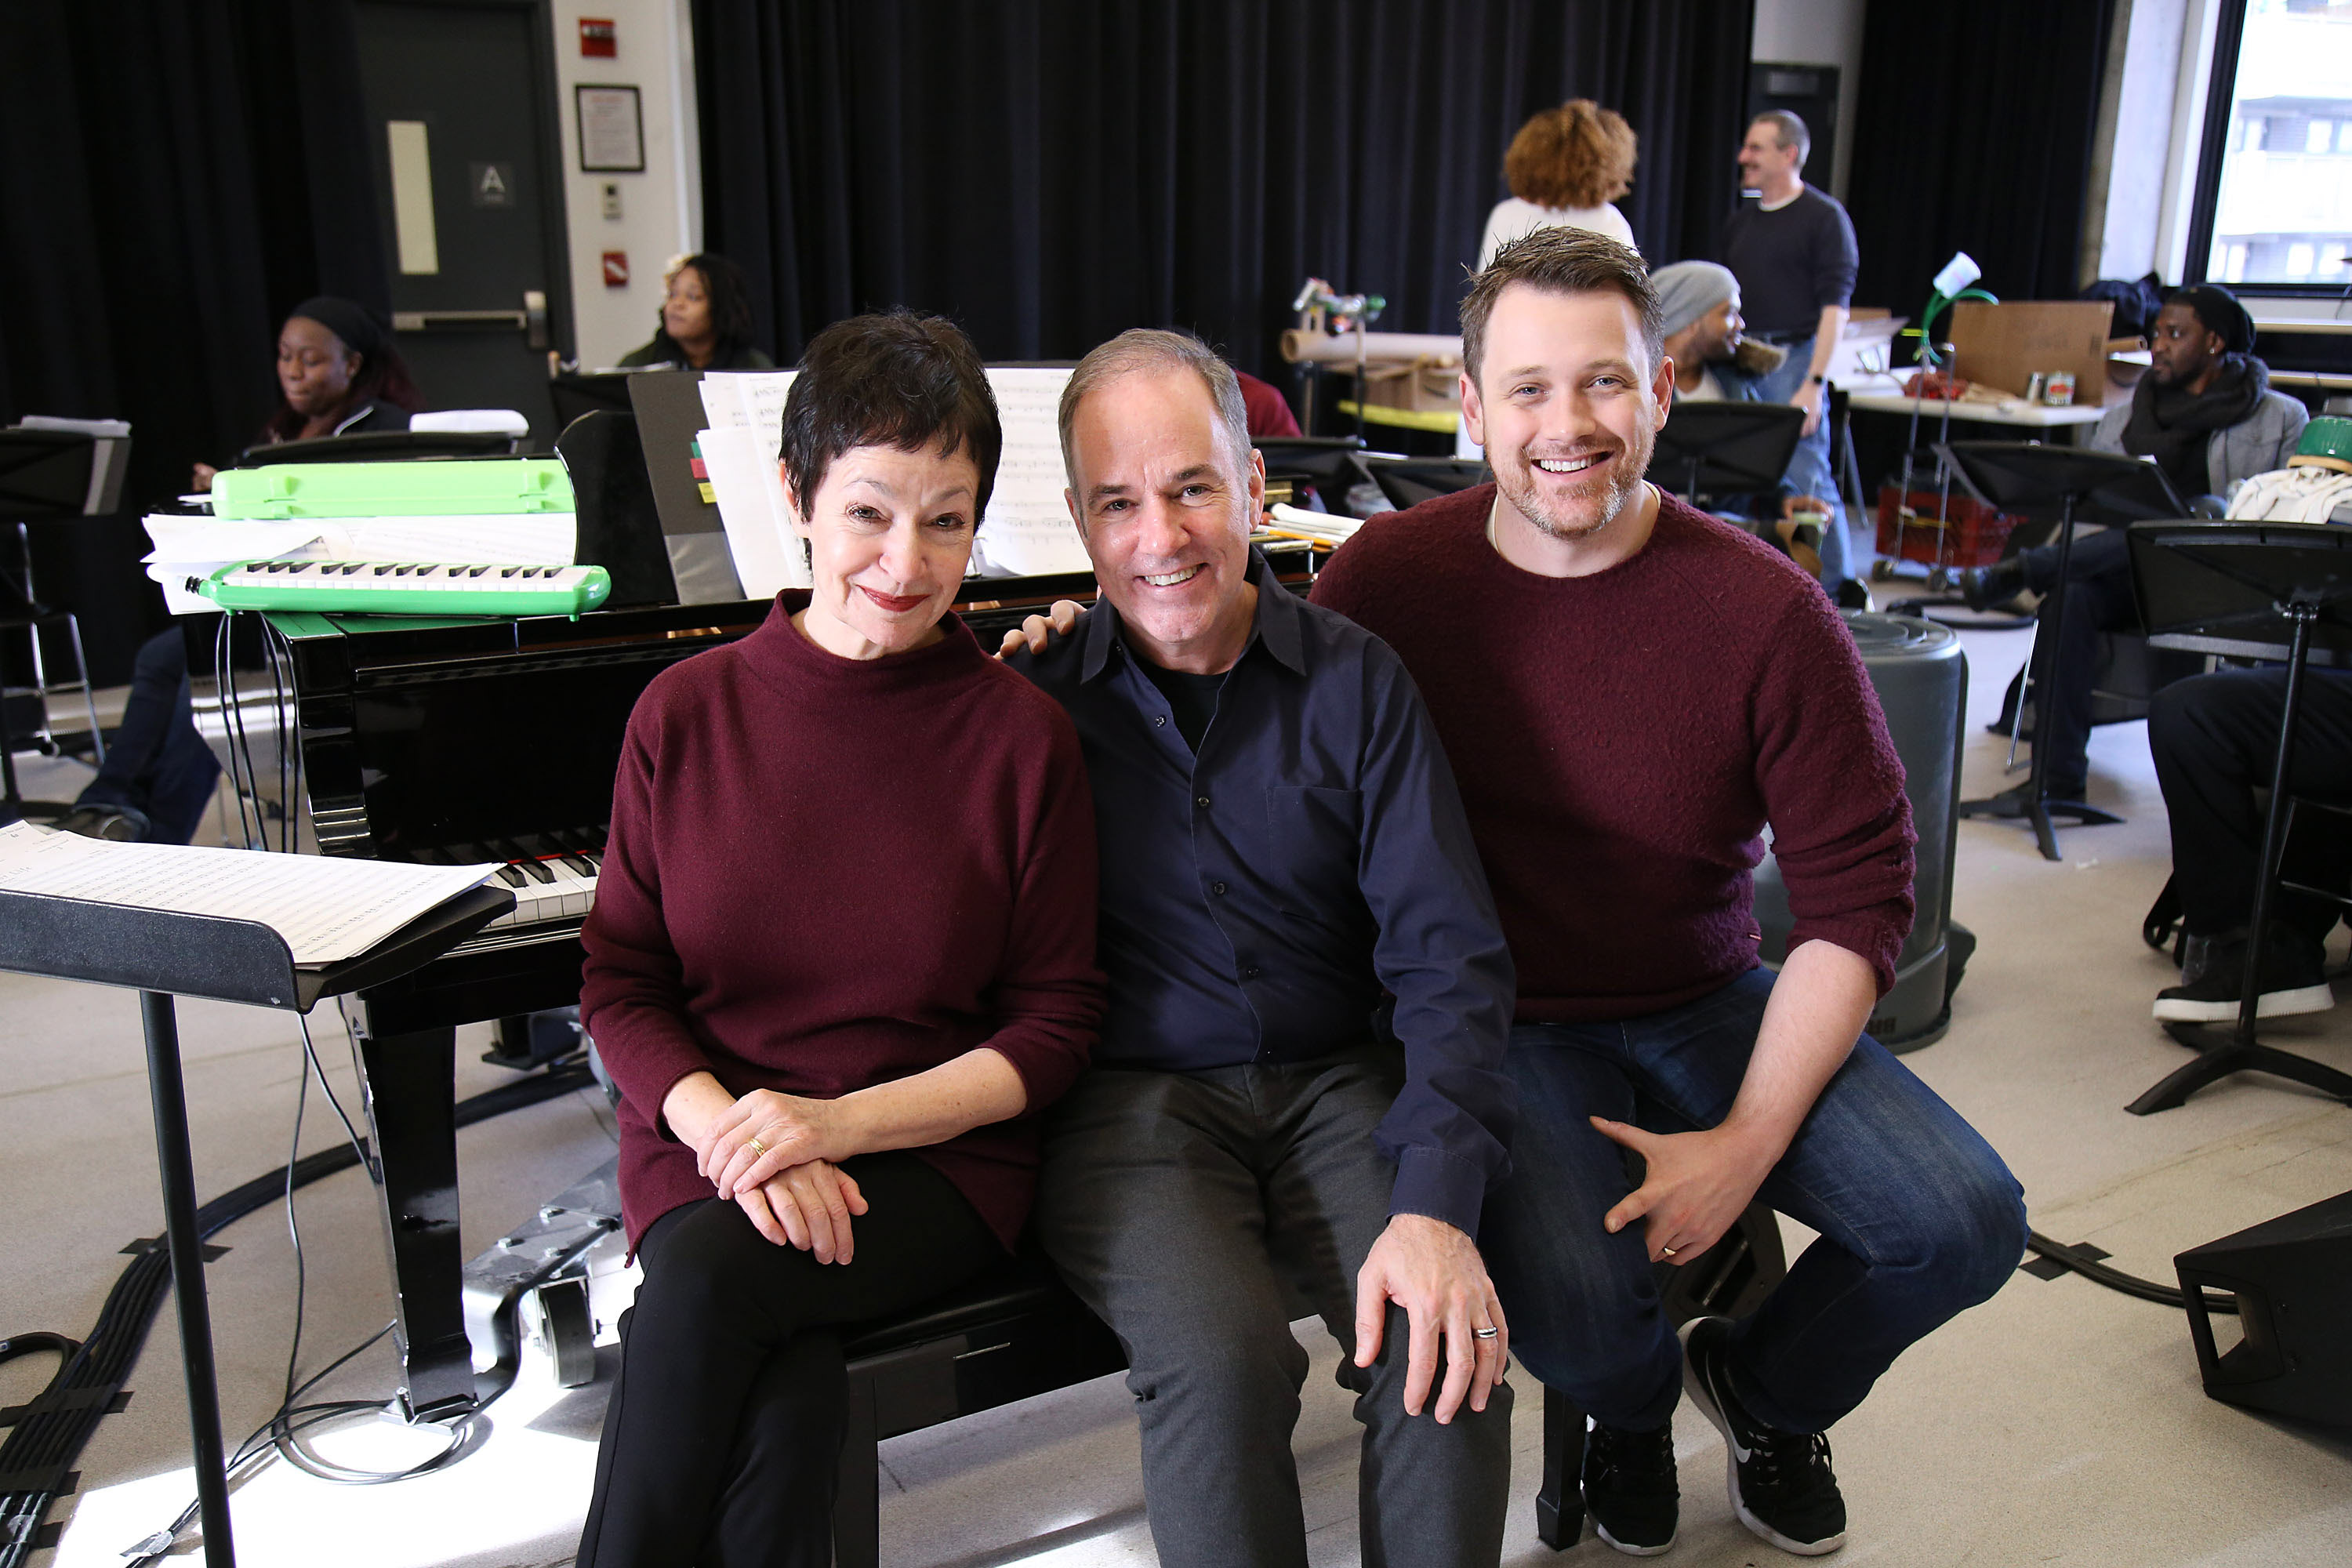 Exclusive: Broadway-Aimed Once on This Island Tests New Sound in